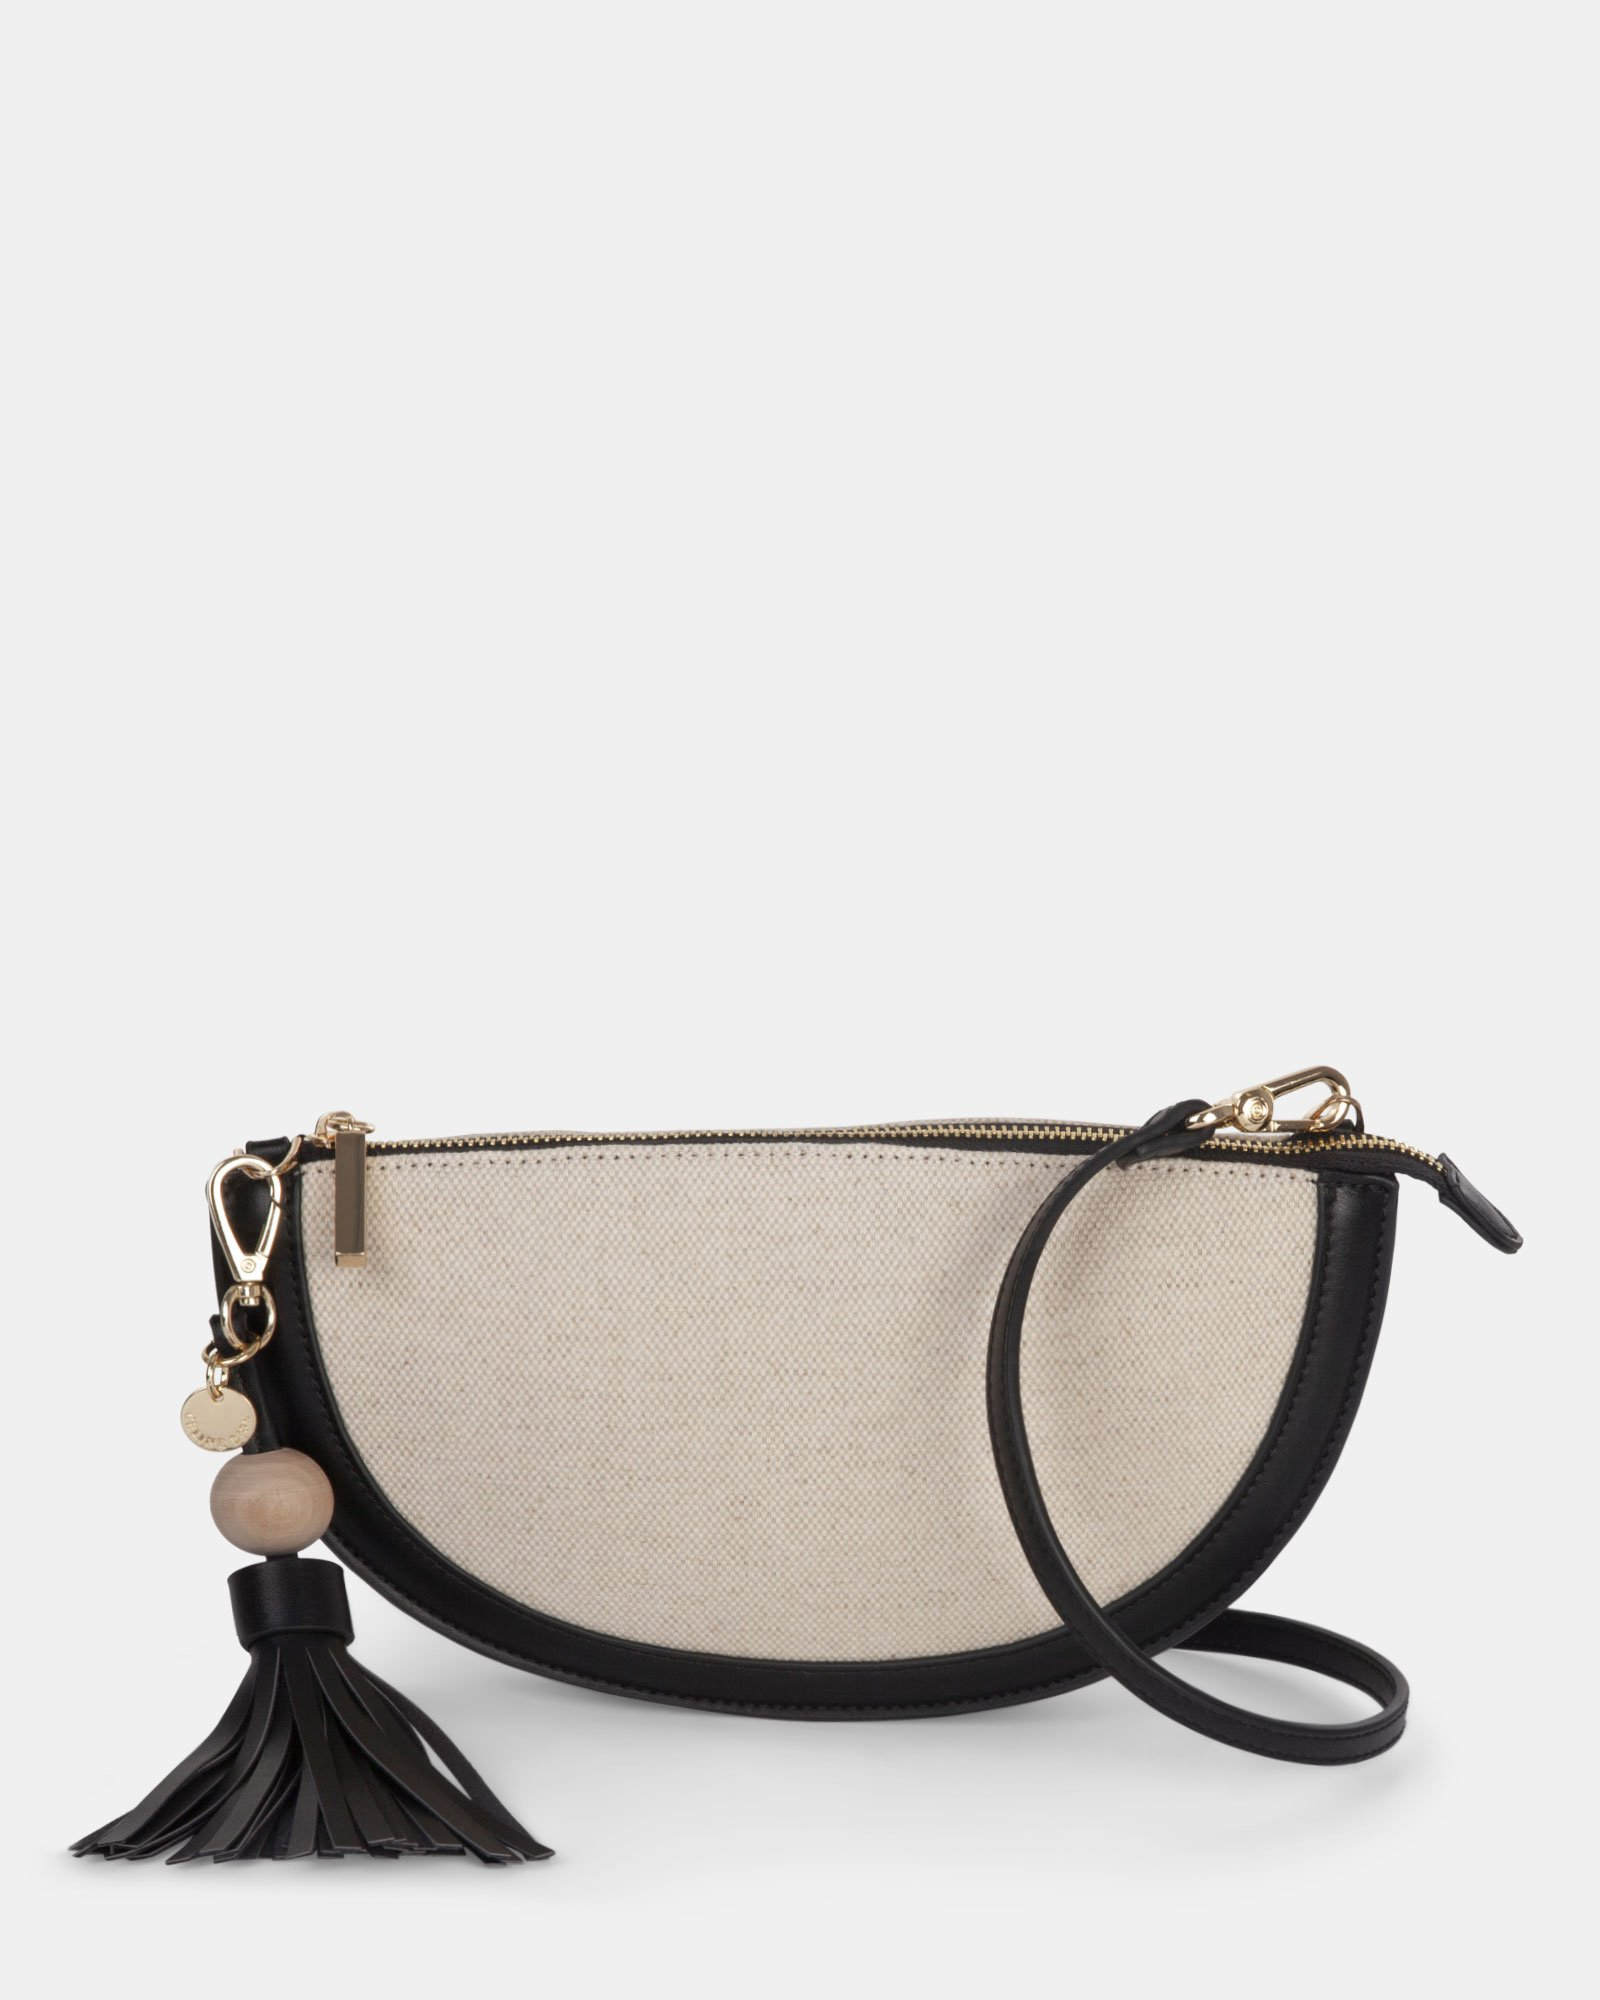 Garbo - Crossbody bag Canvas & leather-like trims - Natural/black - Céline Dion - Zoom